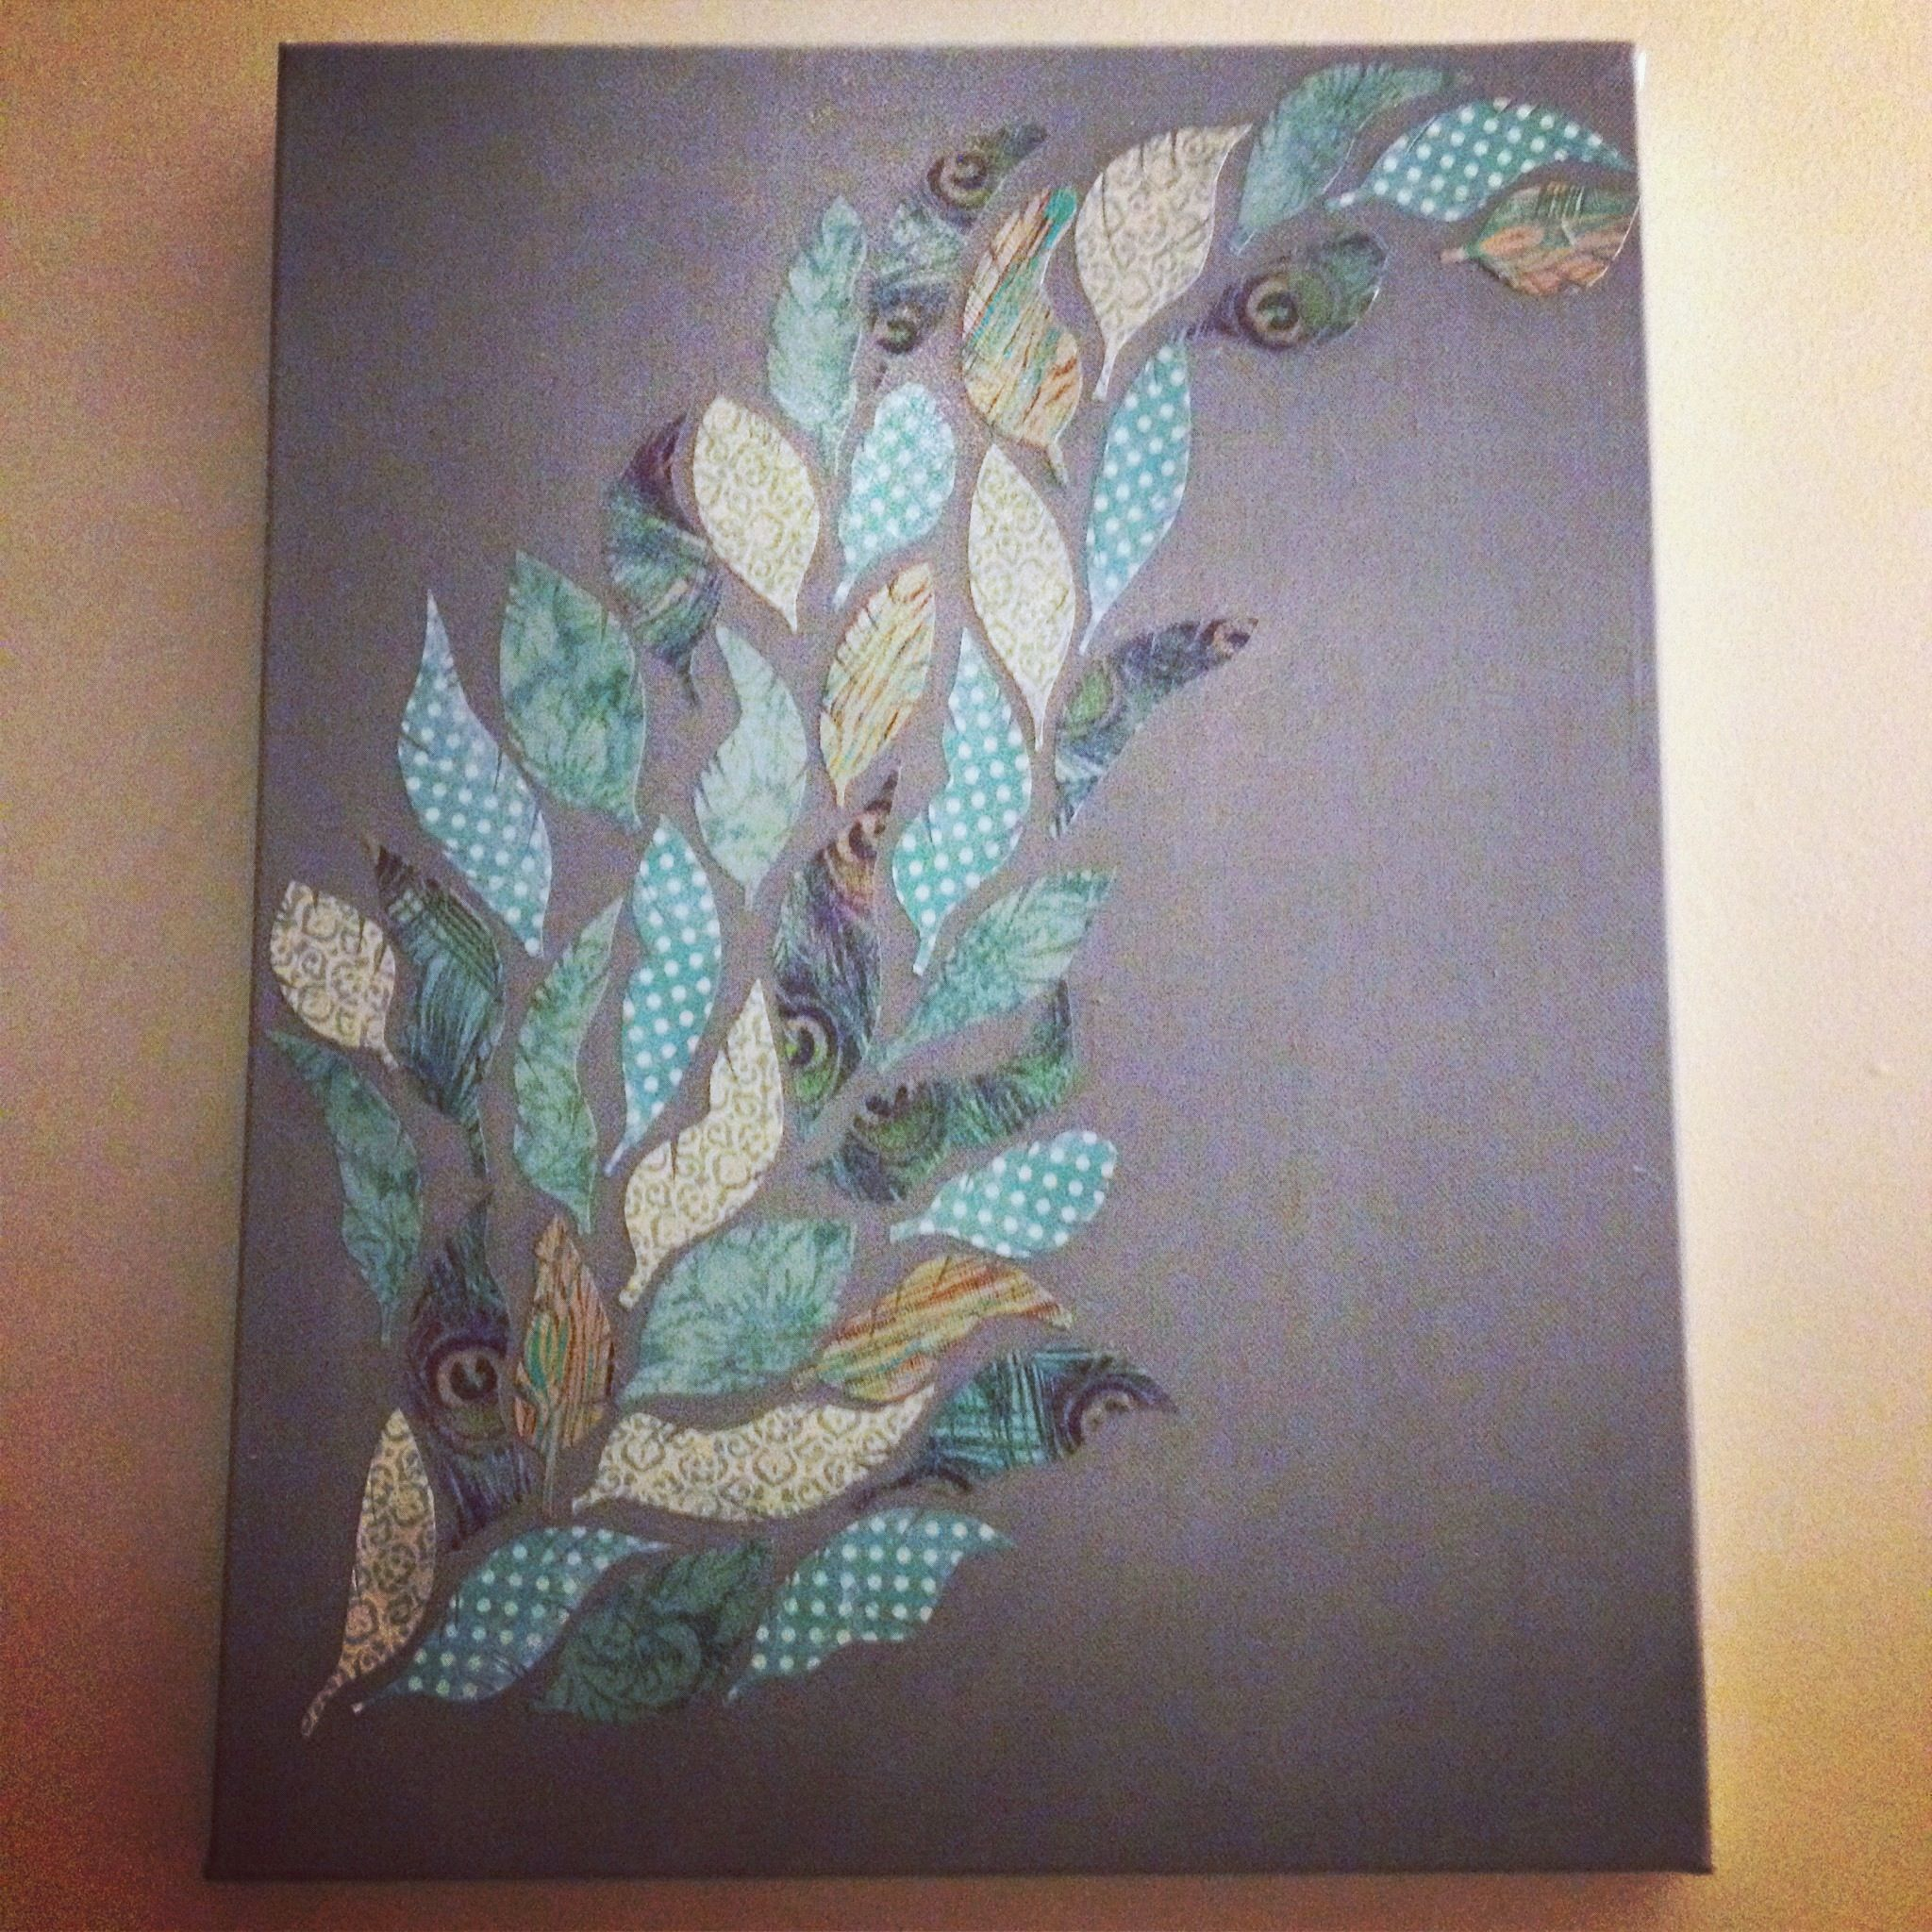 How to scrapbook canvas - Cut Out Feathers From Scrapbook Paper Painted Canvas Mod Podge Feathers Onto Canvas